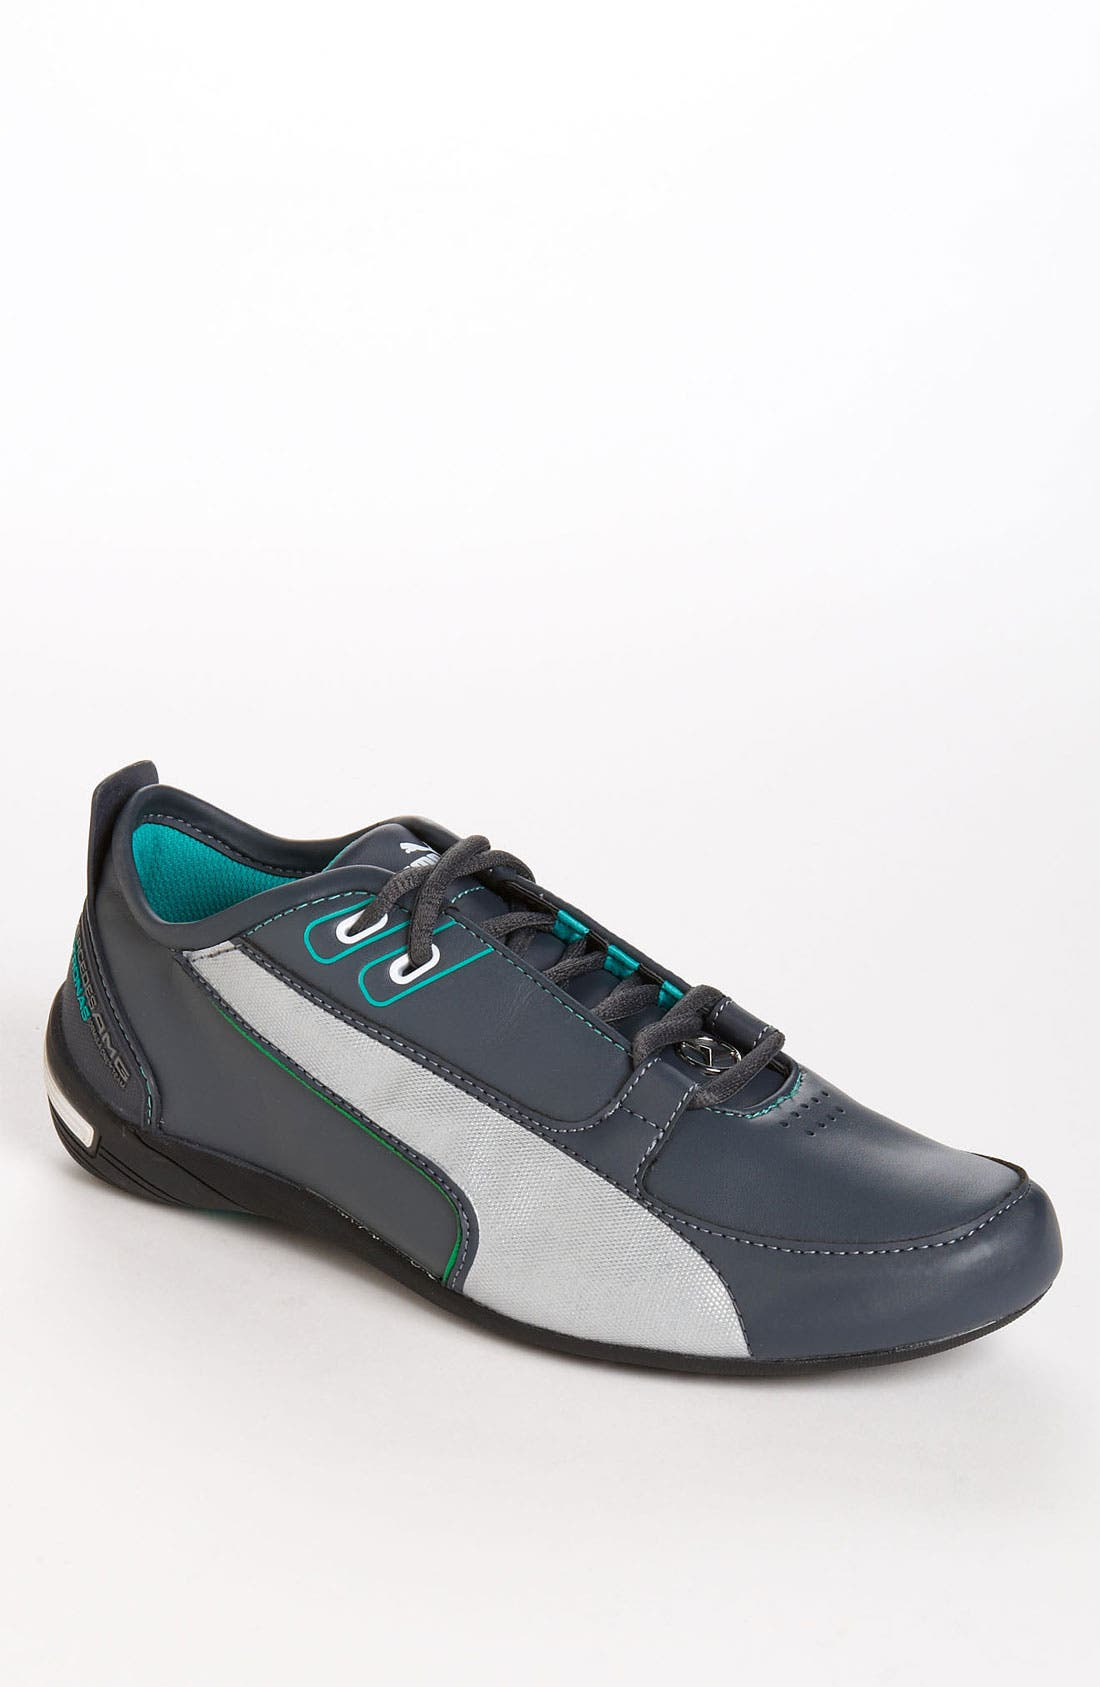 Main Image - PUMA 'Mercedes AMG Petronas Grand Cat' Sneaker (Men)